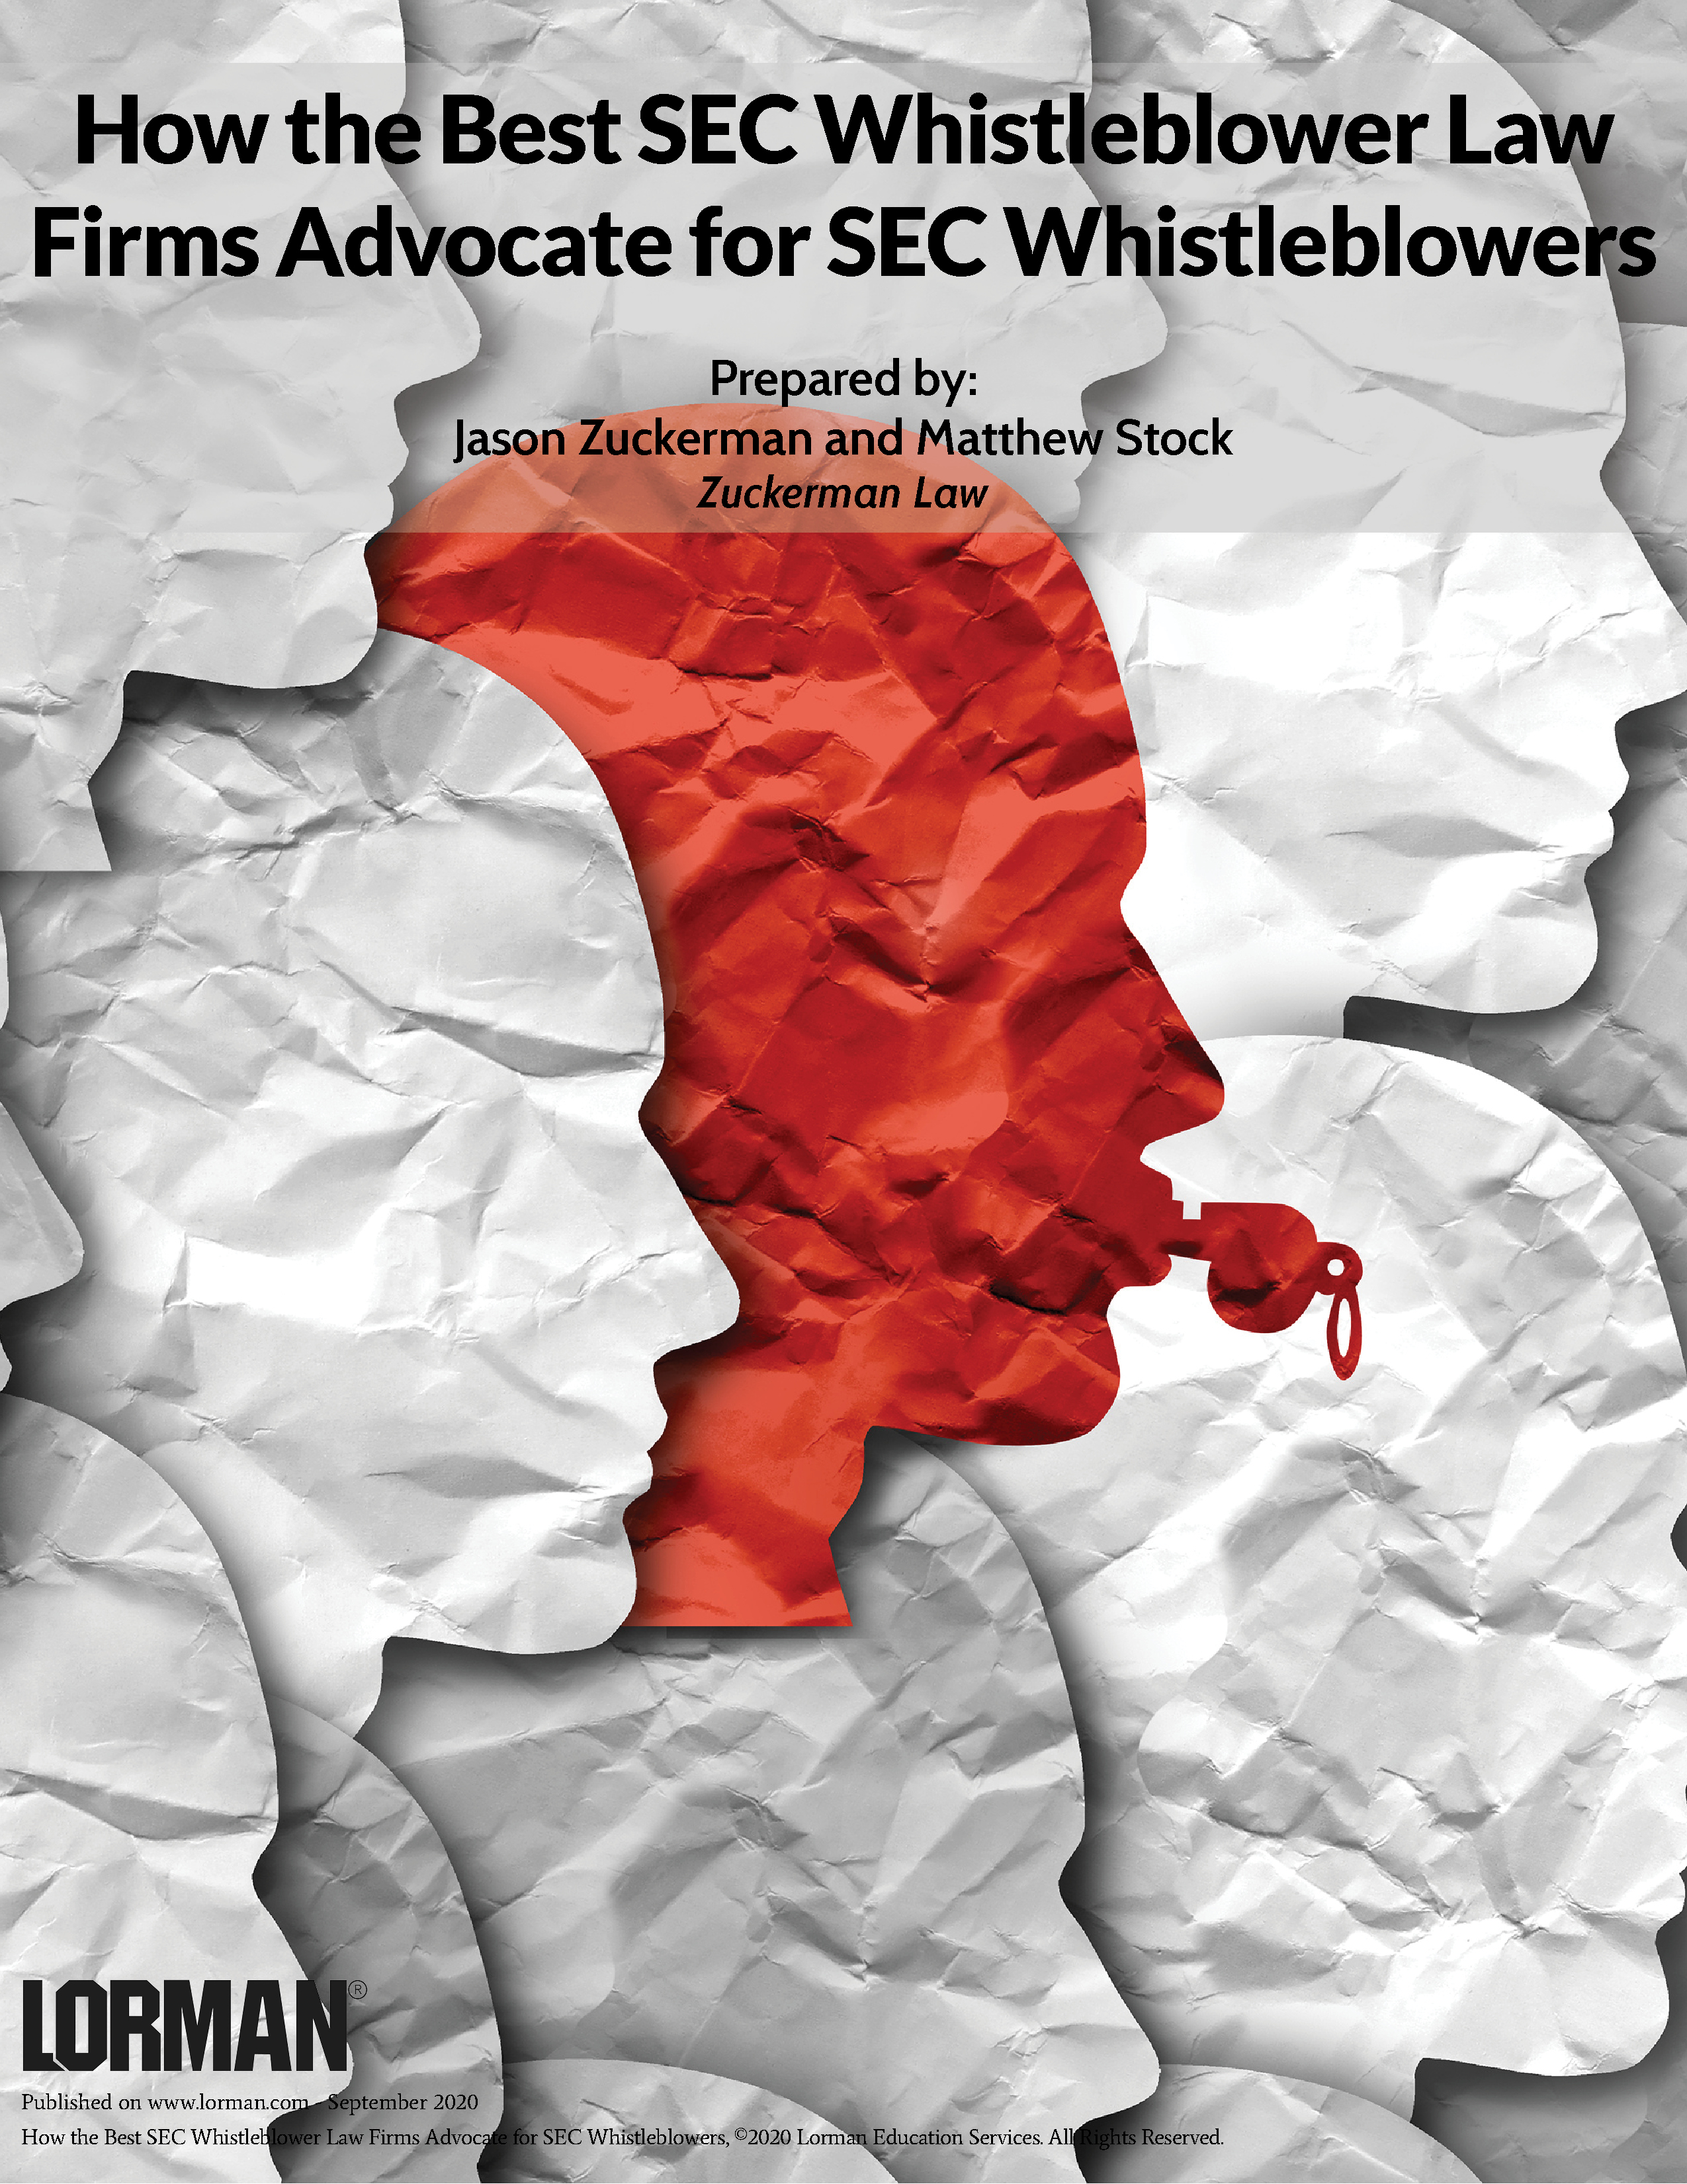 How the Best SEC Whistleblower Law Firms Advocate for SEC Whistleblowers